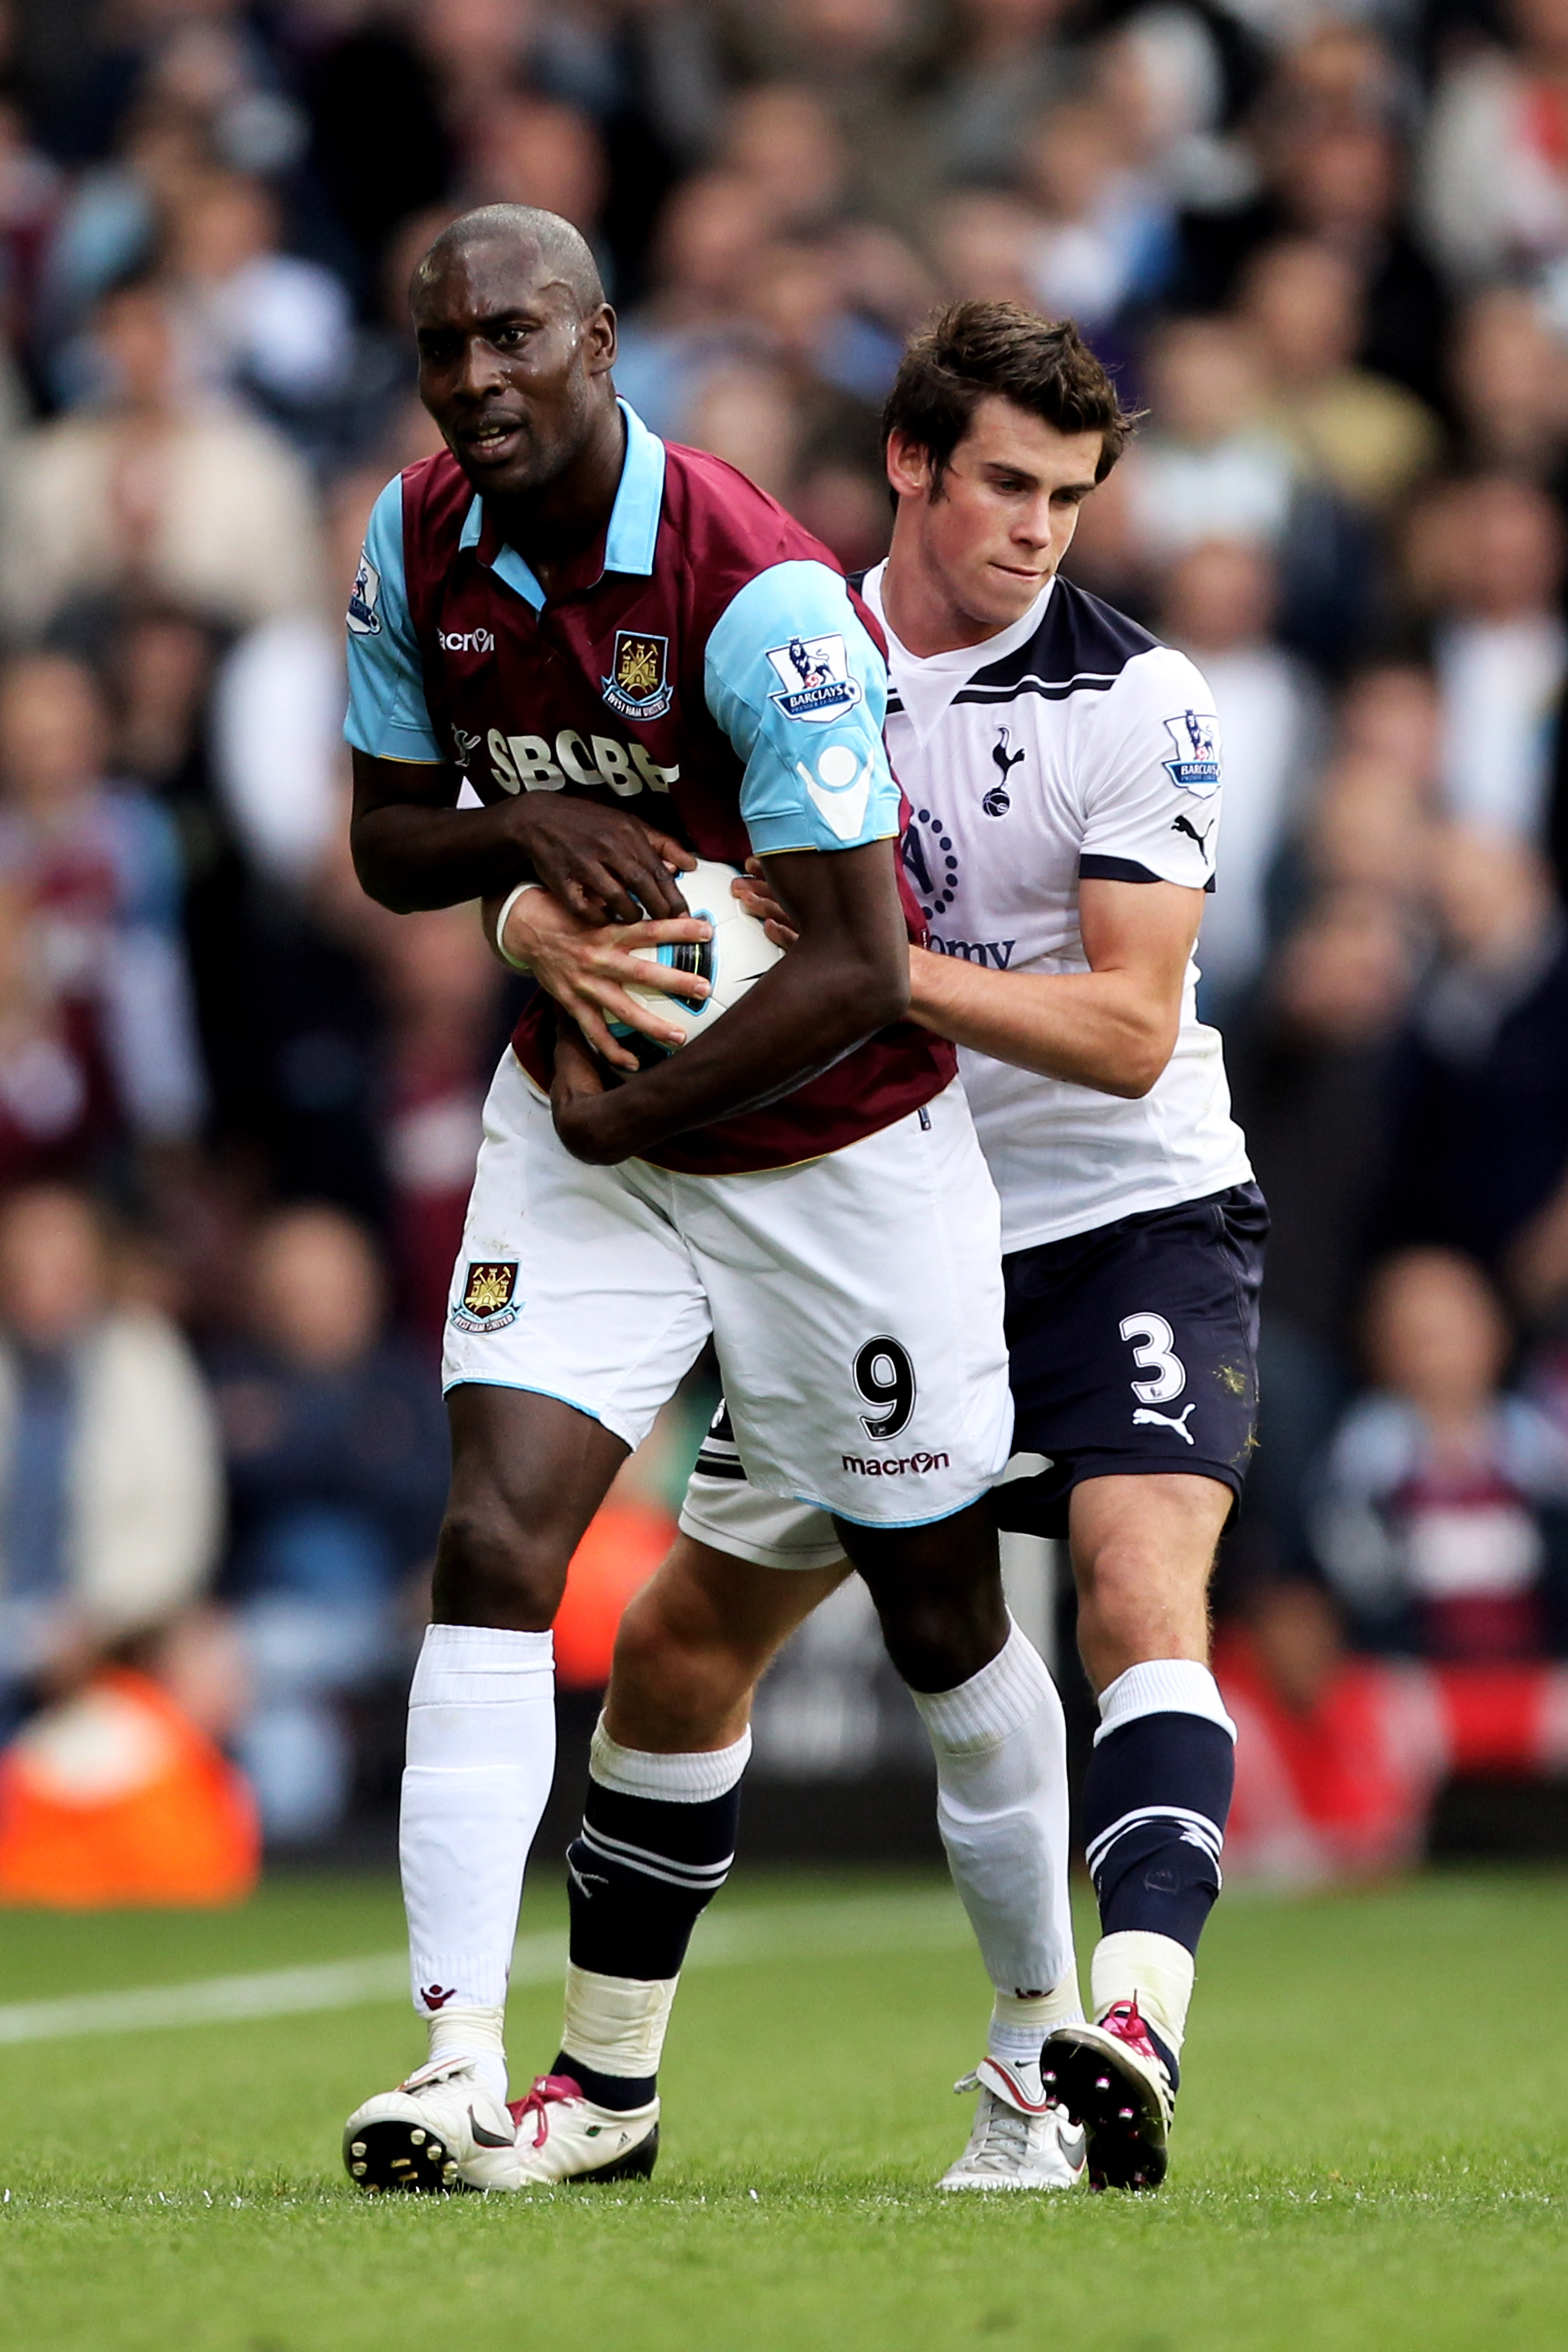 LONDON, ENGLAND - SEPTEMBER 25:  Carlton Cole of West Ham refuses to give the ball to Gareth Bale of Spurs for a throw in late on during the Barclays Premier League match between West Ham United and Tottenham Hotspur at the Boleyn Ground on September 25,